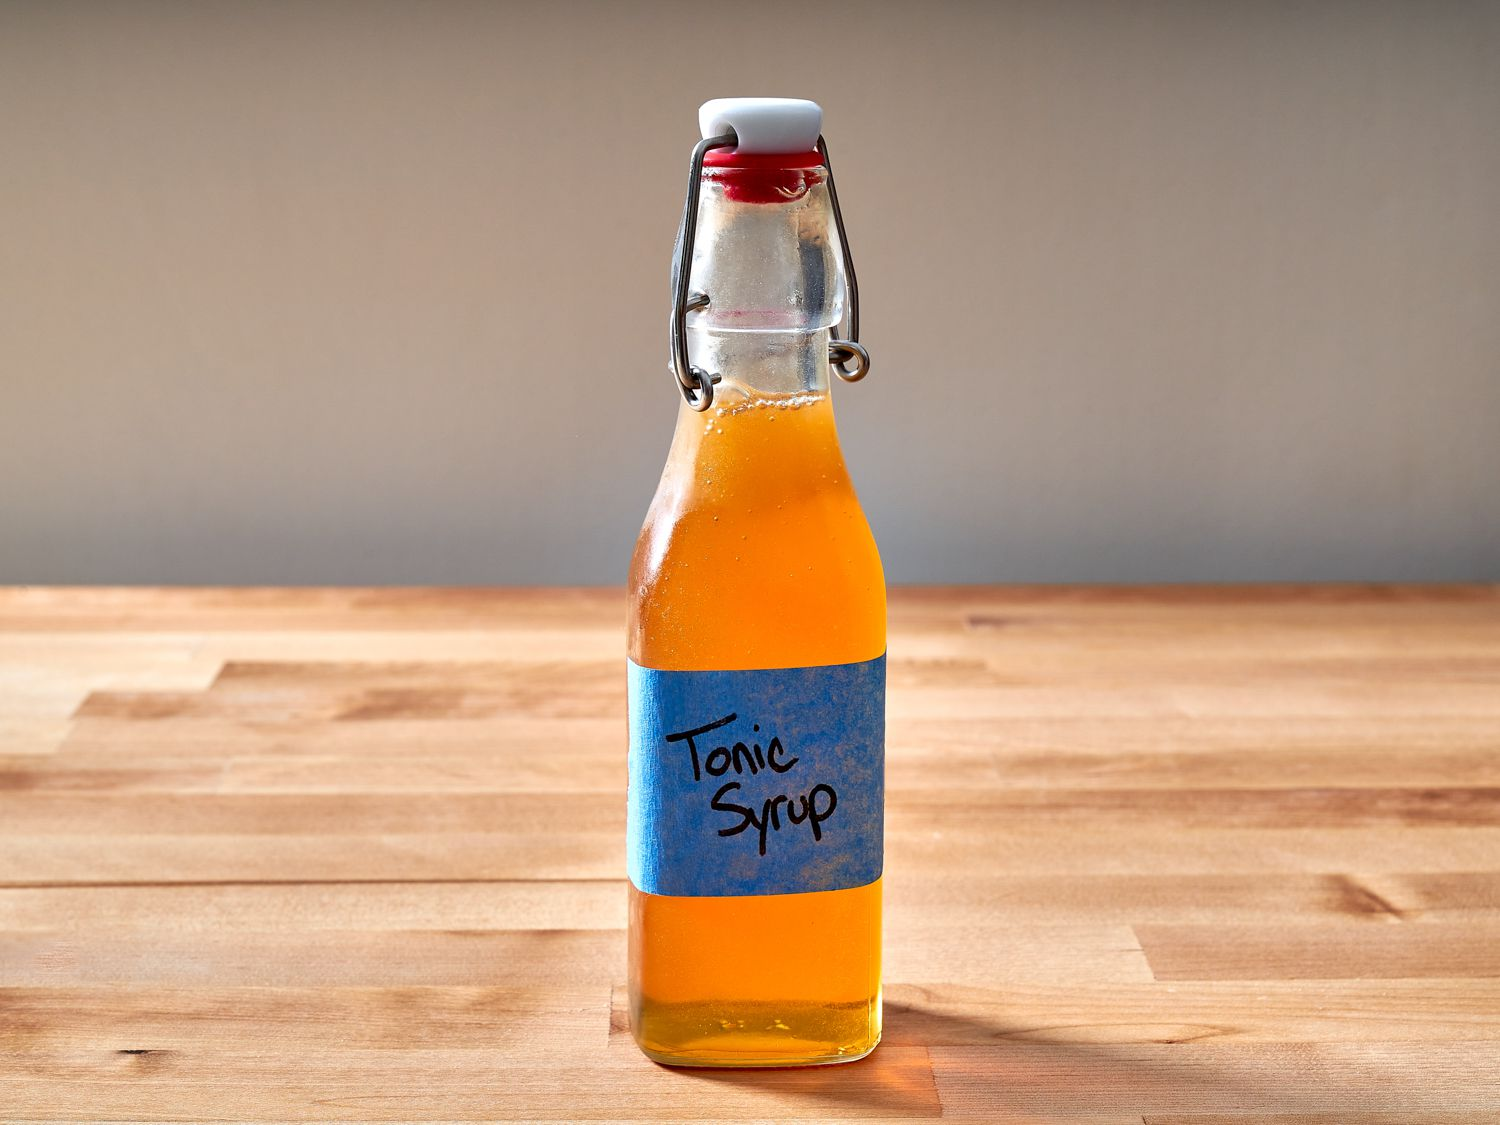 Tonic syrup in a sealed bottle